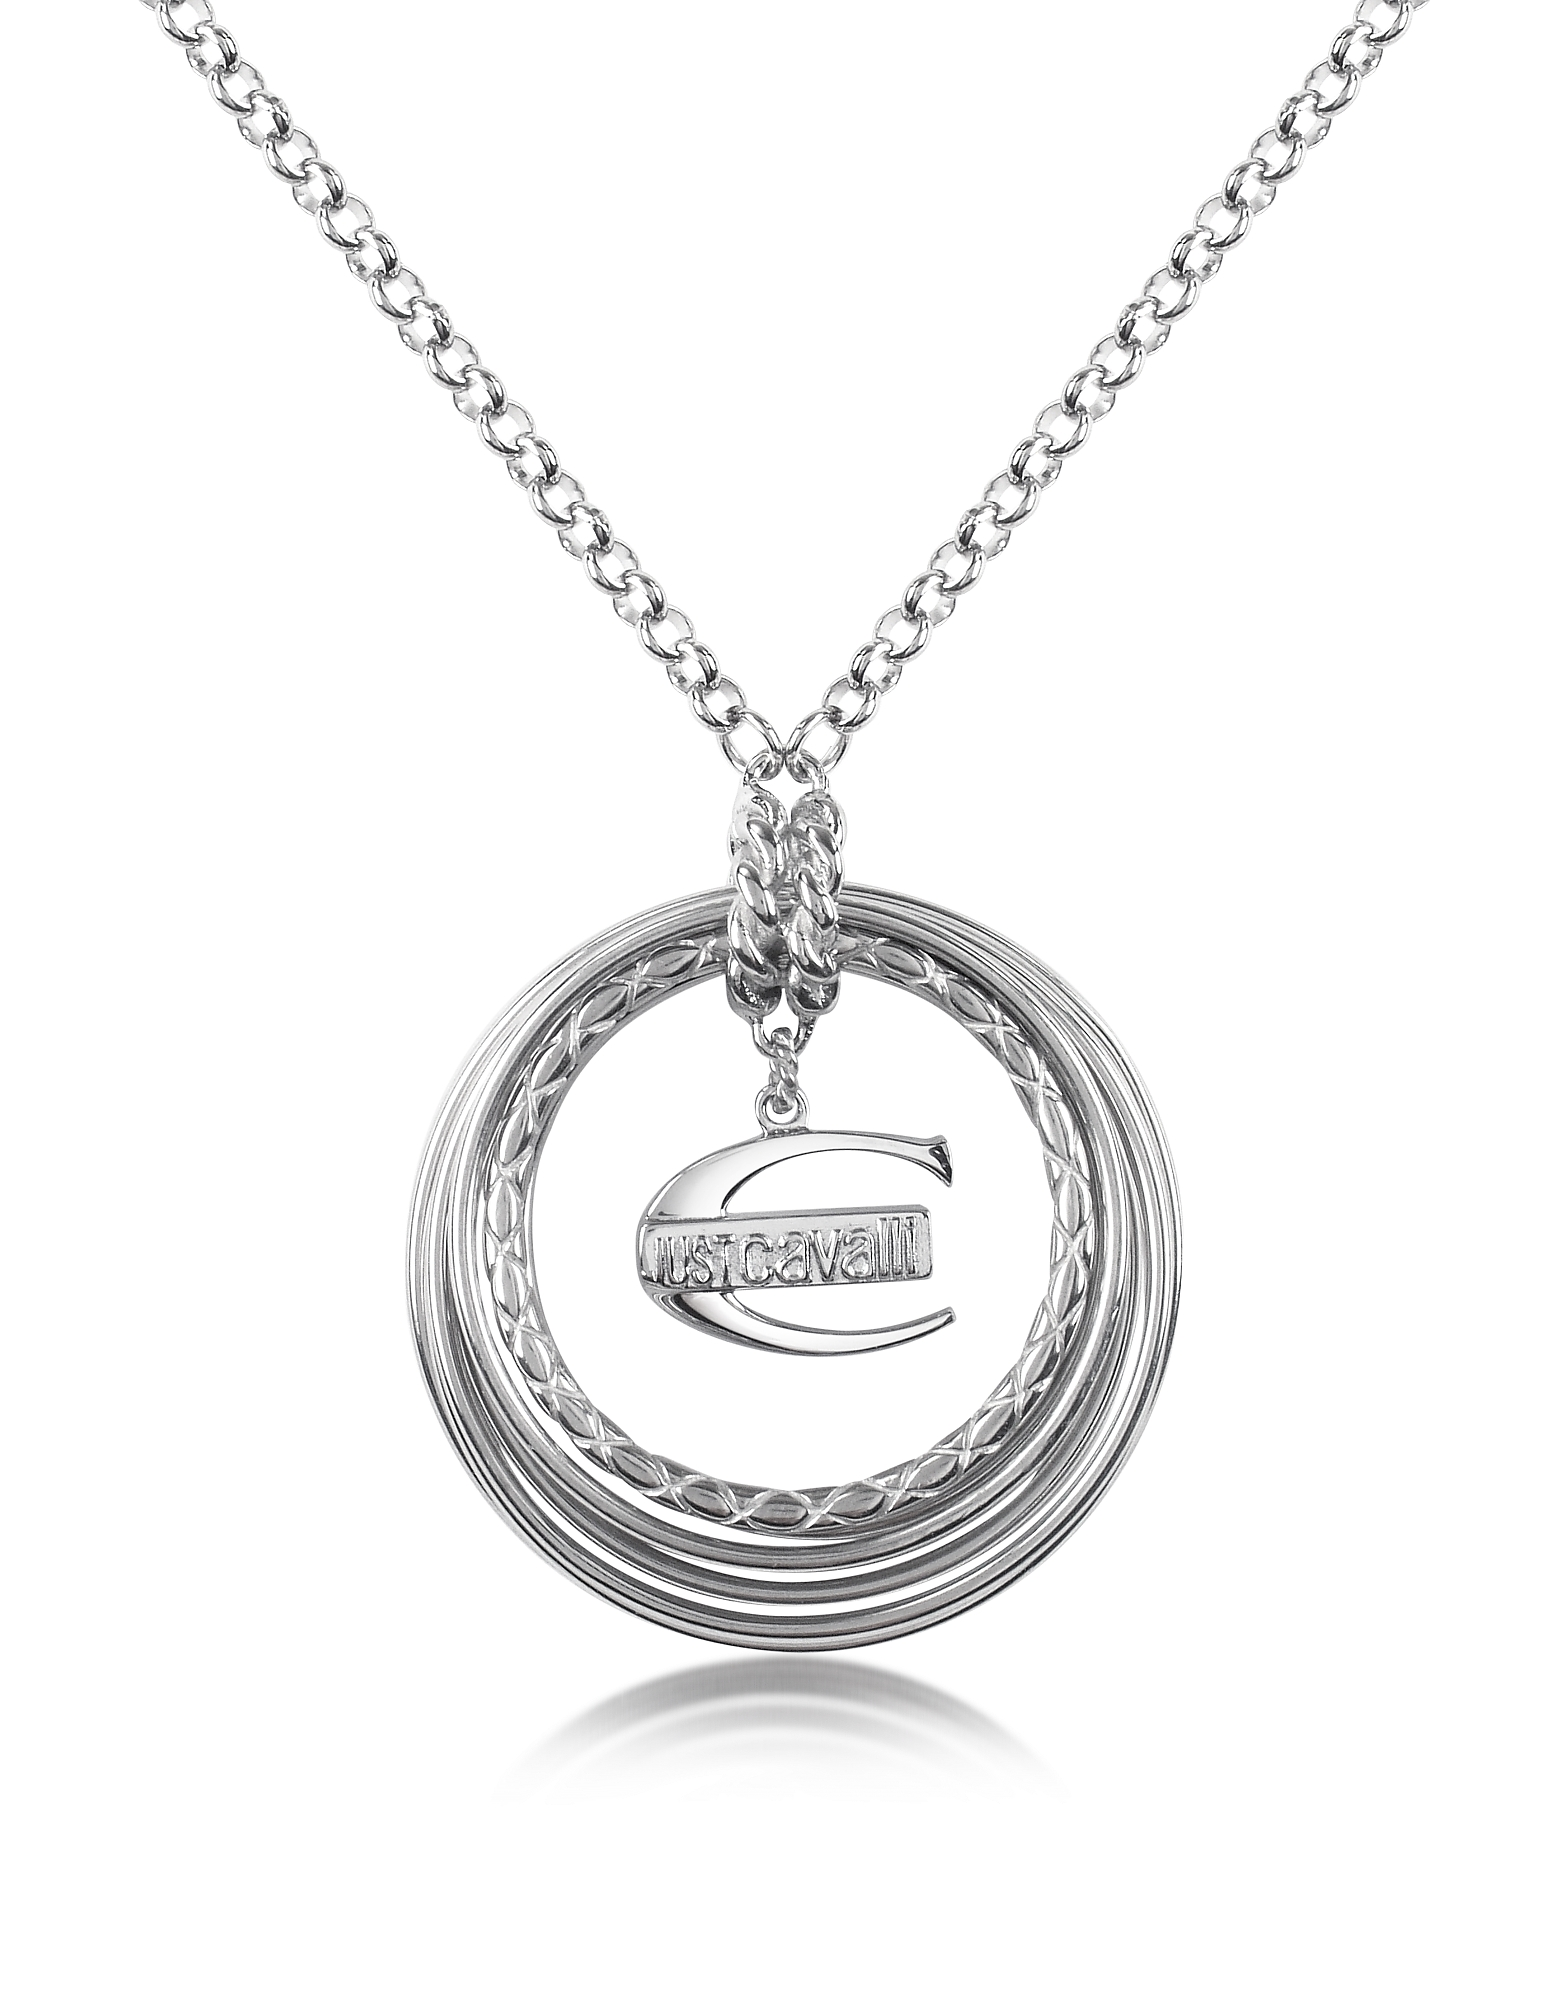 Just Cavalli Necklaces, Infinity - Logo Pendant Chain Necklace